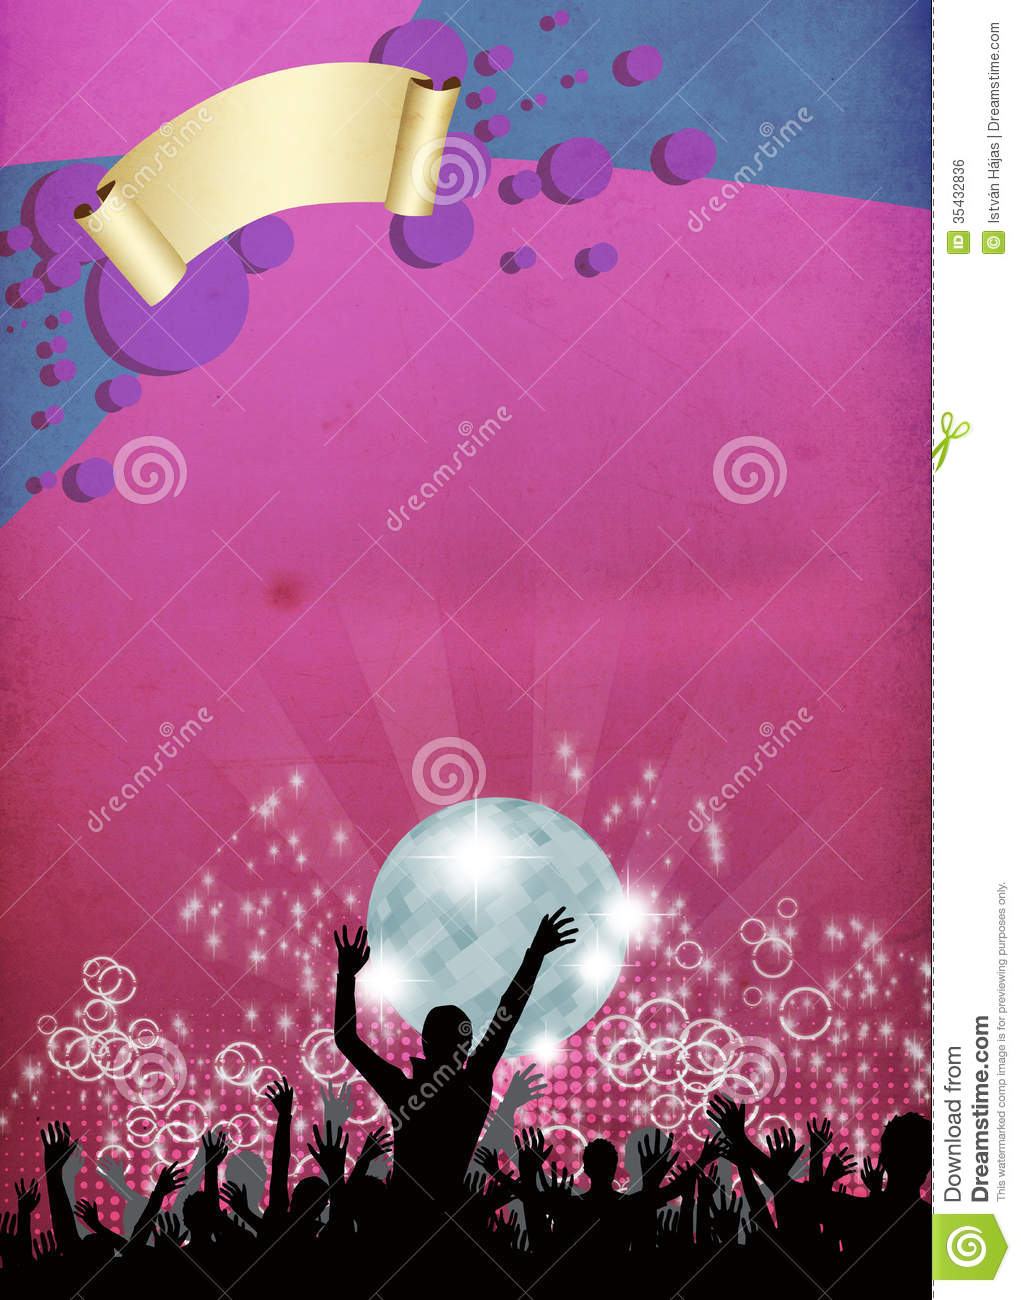 Party Invitation Background Royalty Free Stock Image - Image: 35432836